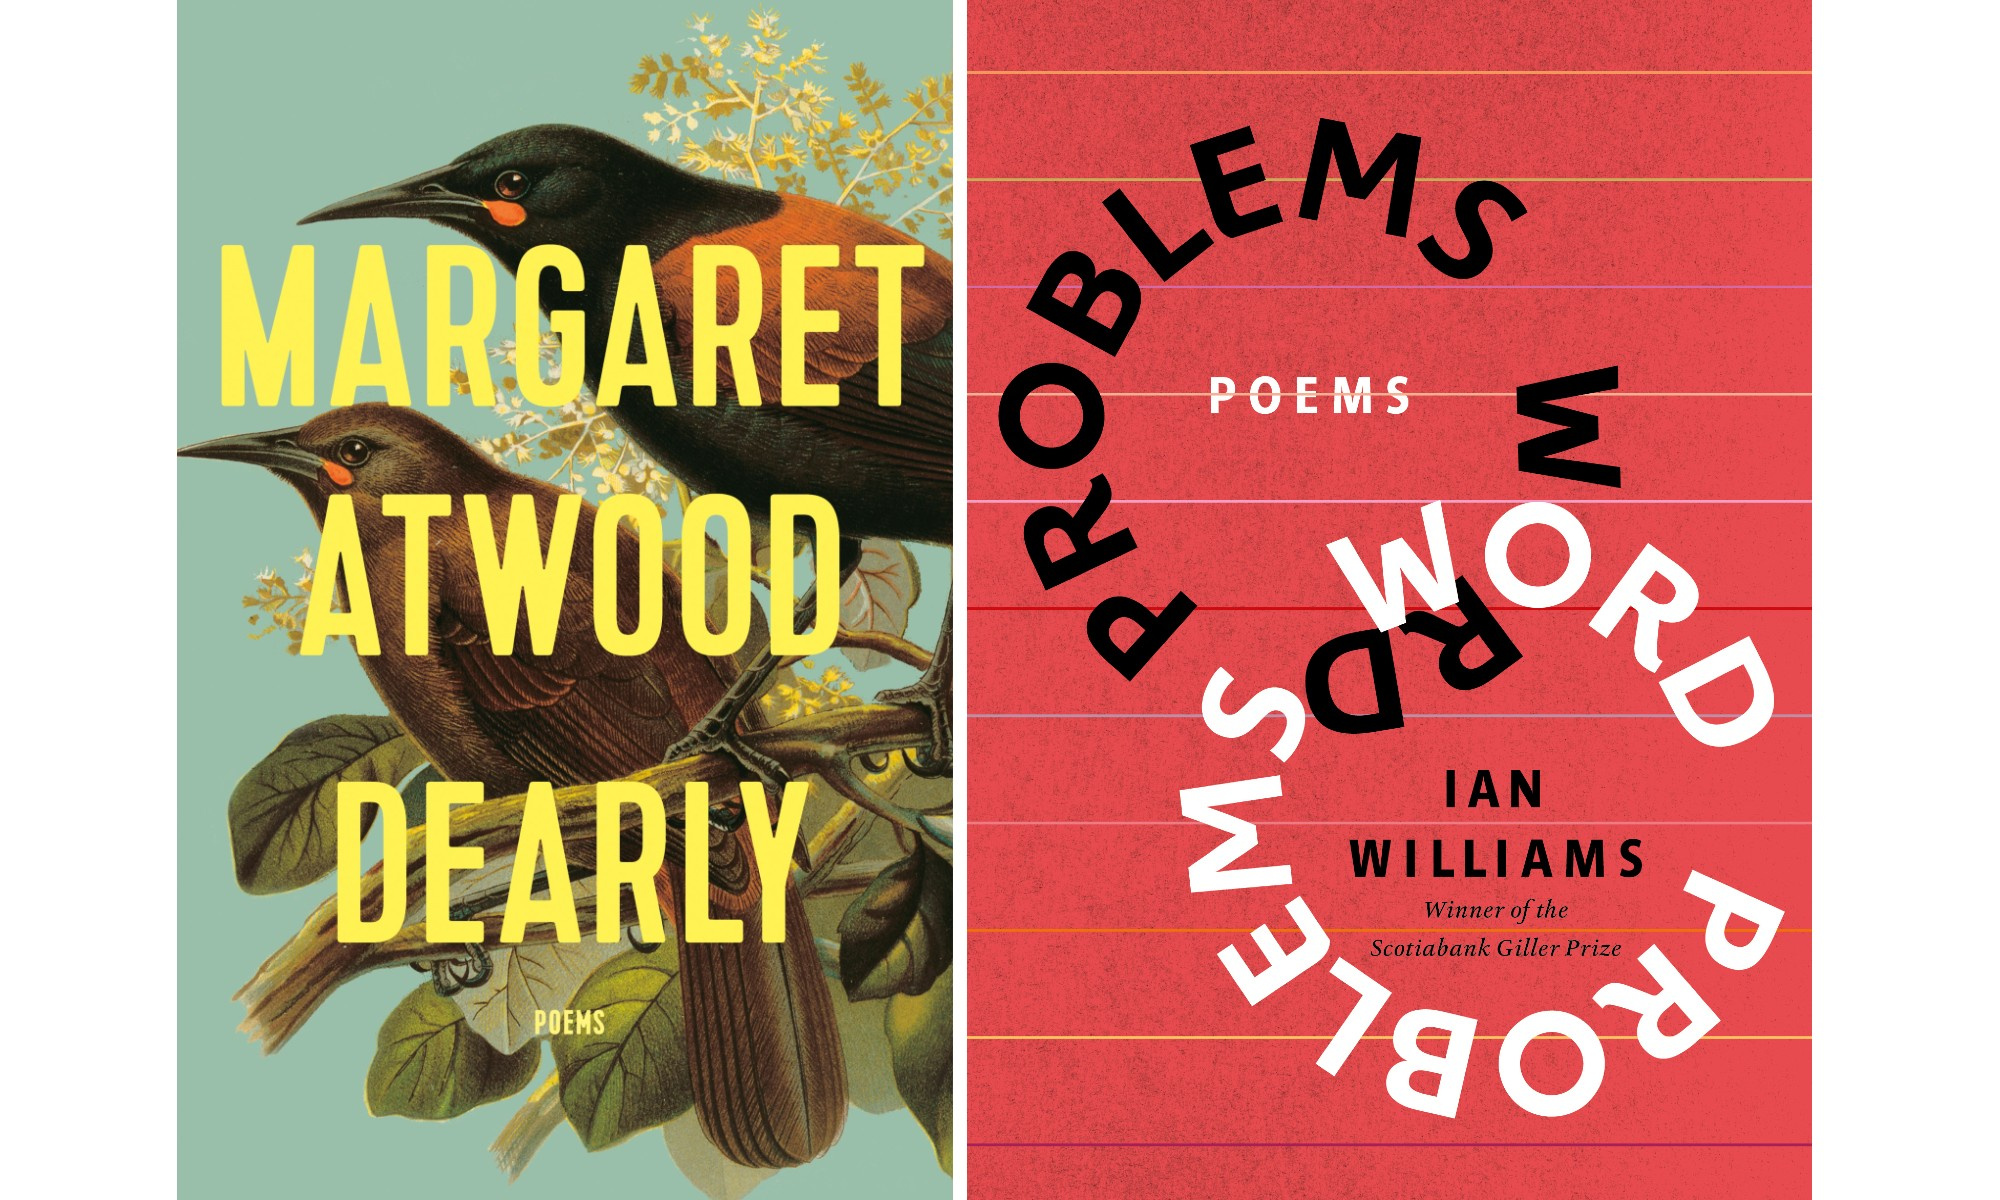 Covers of Margaret Atwood's Dearly and Ian Williams